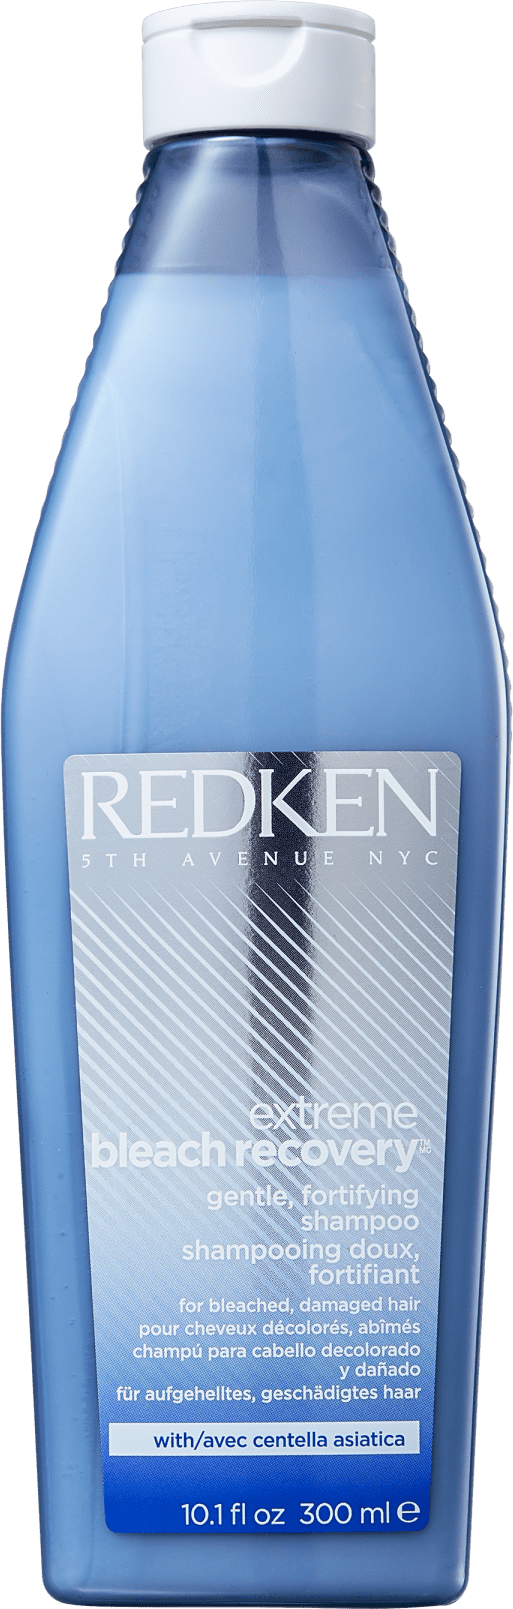 Extreme Blech Reco Shampoo Fortificante 300ml Redken